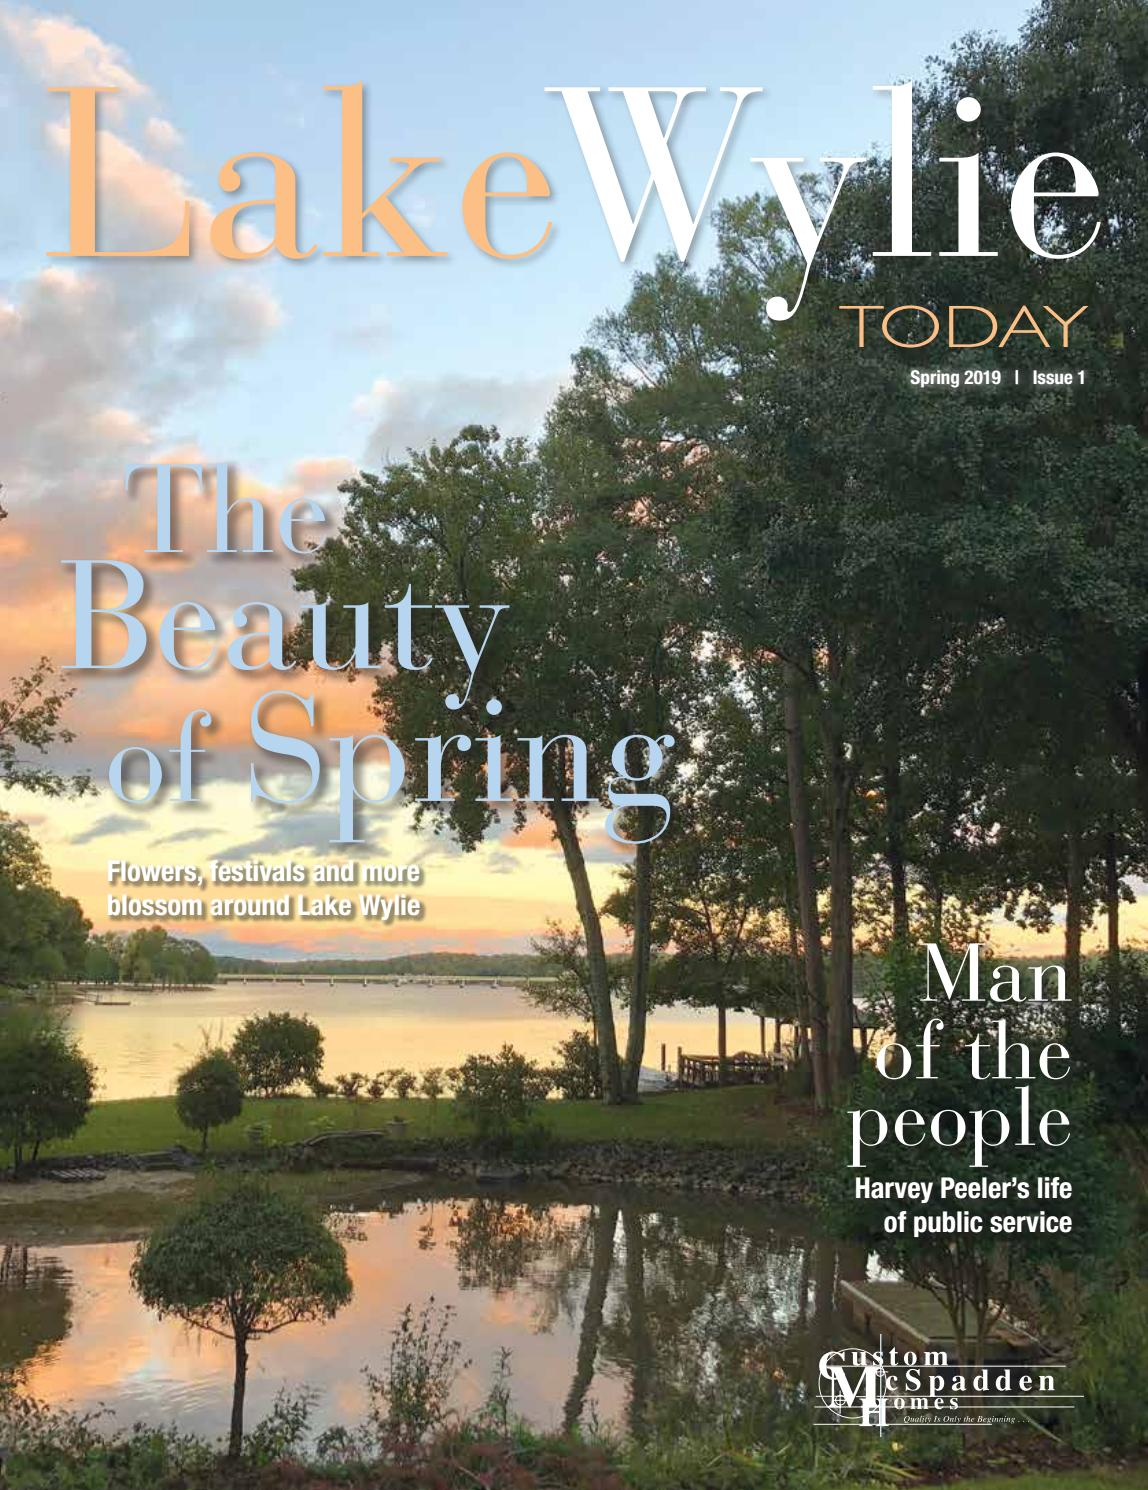 Lake Wylie Today, Spring 2019 by SC BIZ News - issuu